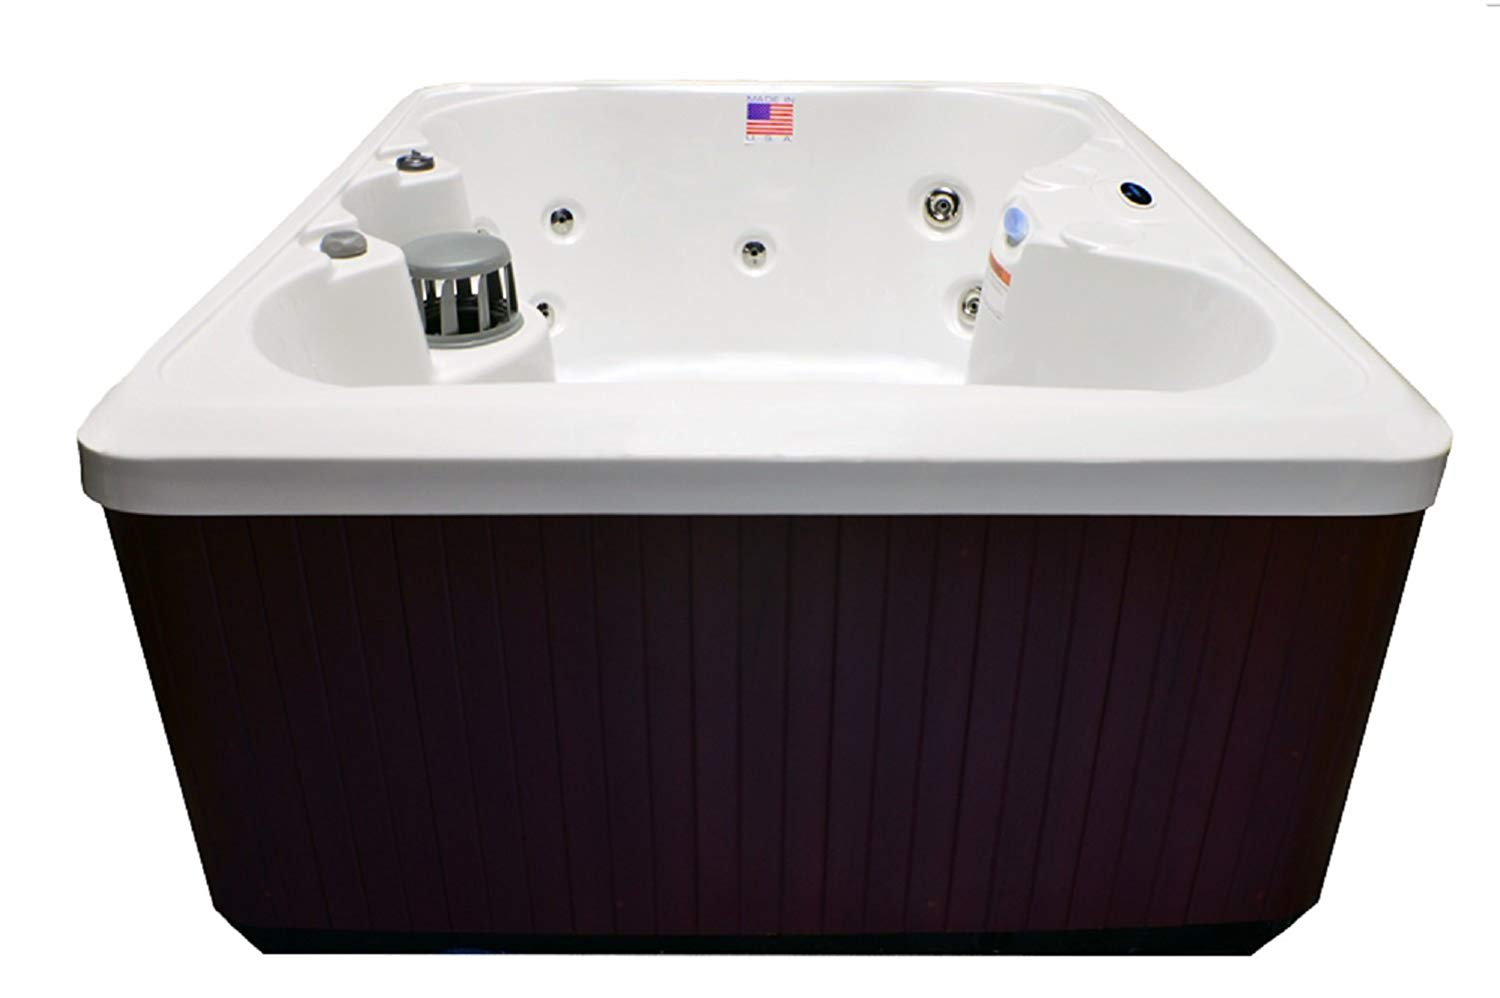 Hudson Spas Person Stainless Included